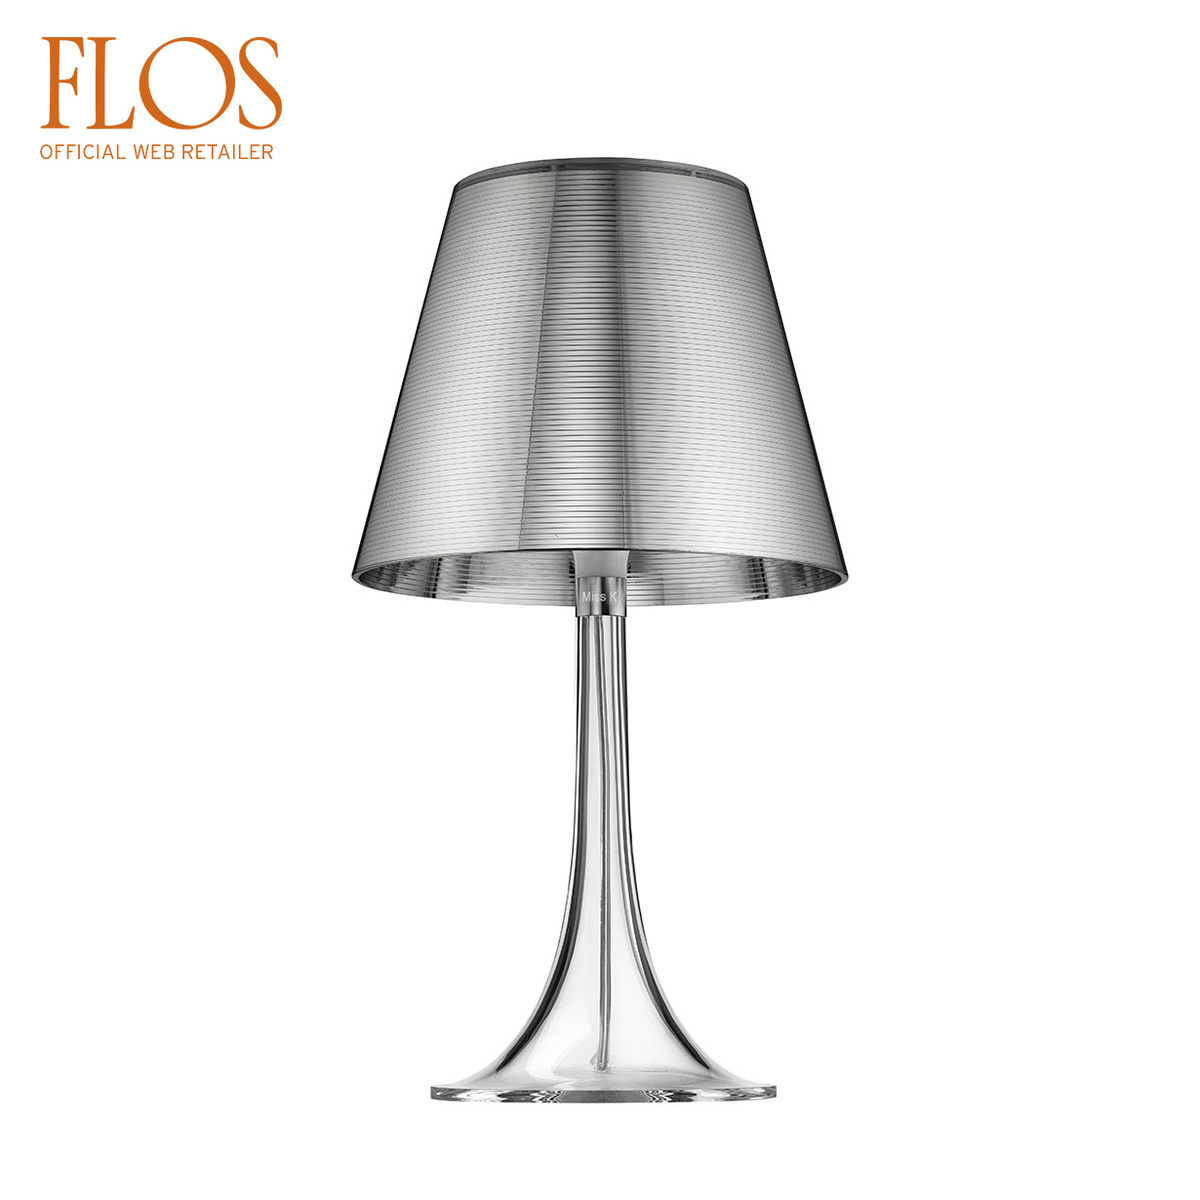 Miss k t table lamp by Flos | LOVEThESIGN